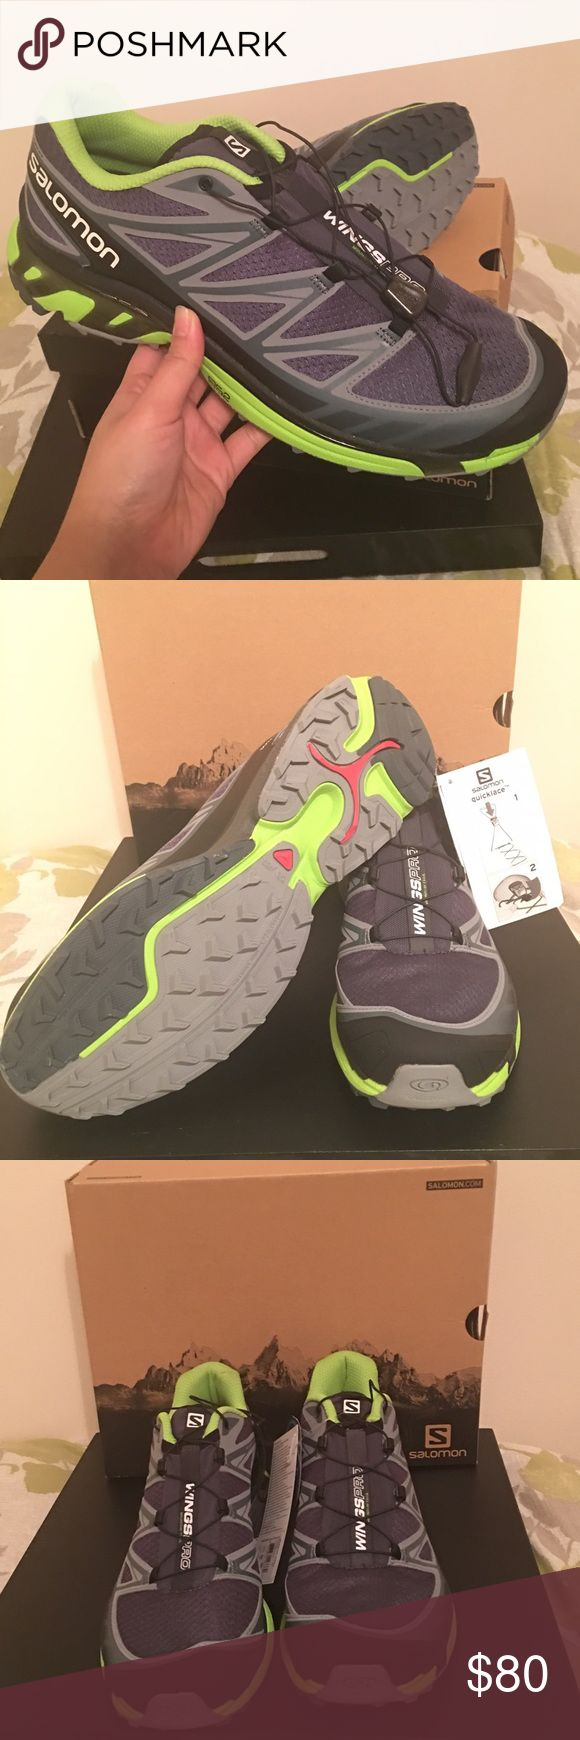 Salomon Wings Pro Mountain Trail Shoes New with box. Size 11.5 / Color: Grey & Green Salomon Shoes Athletic Shoes